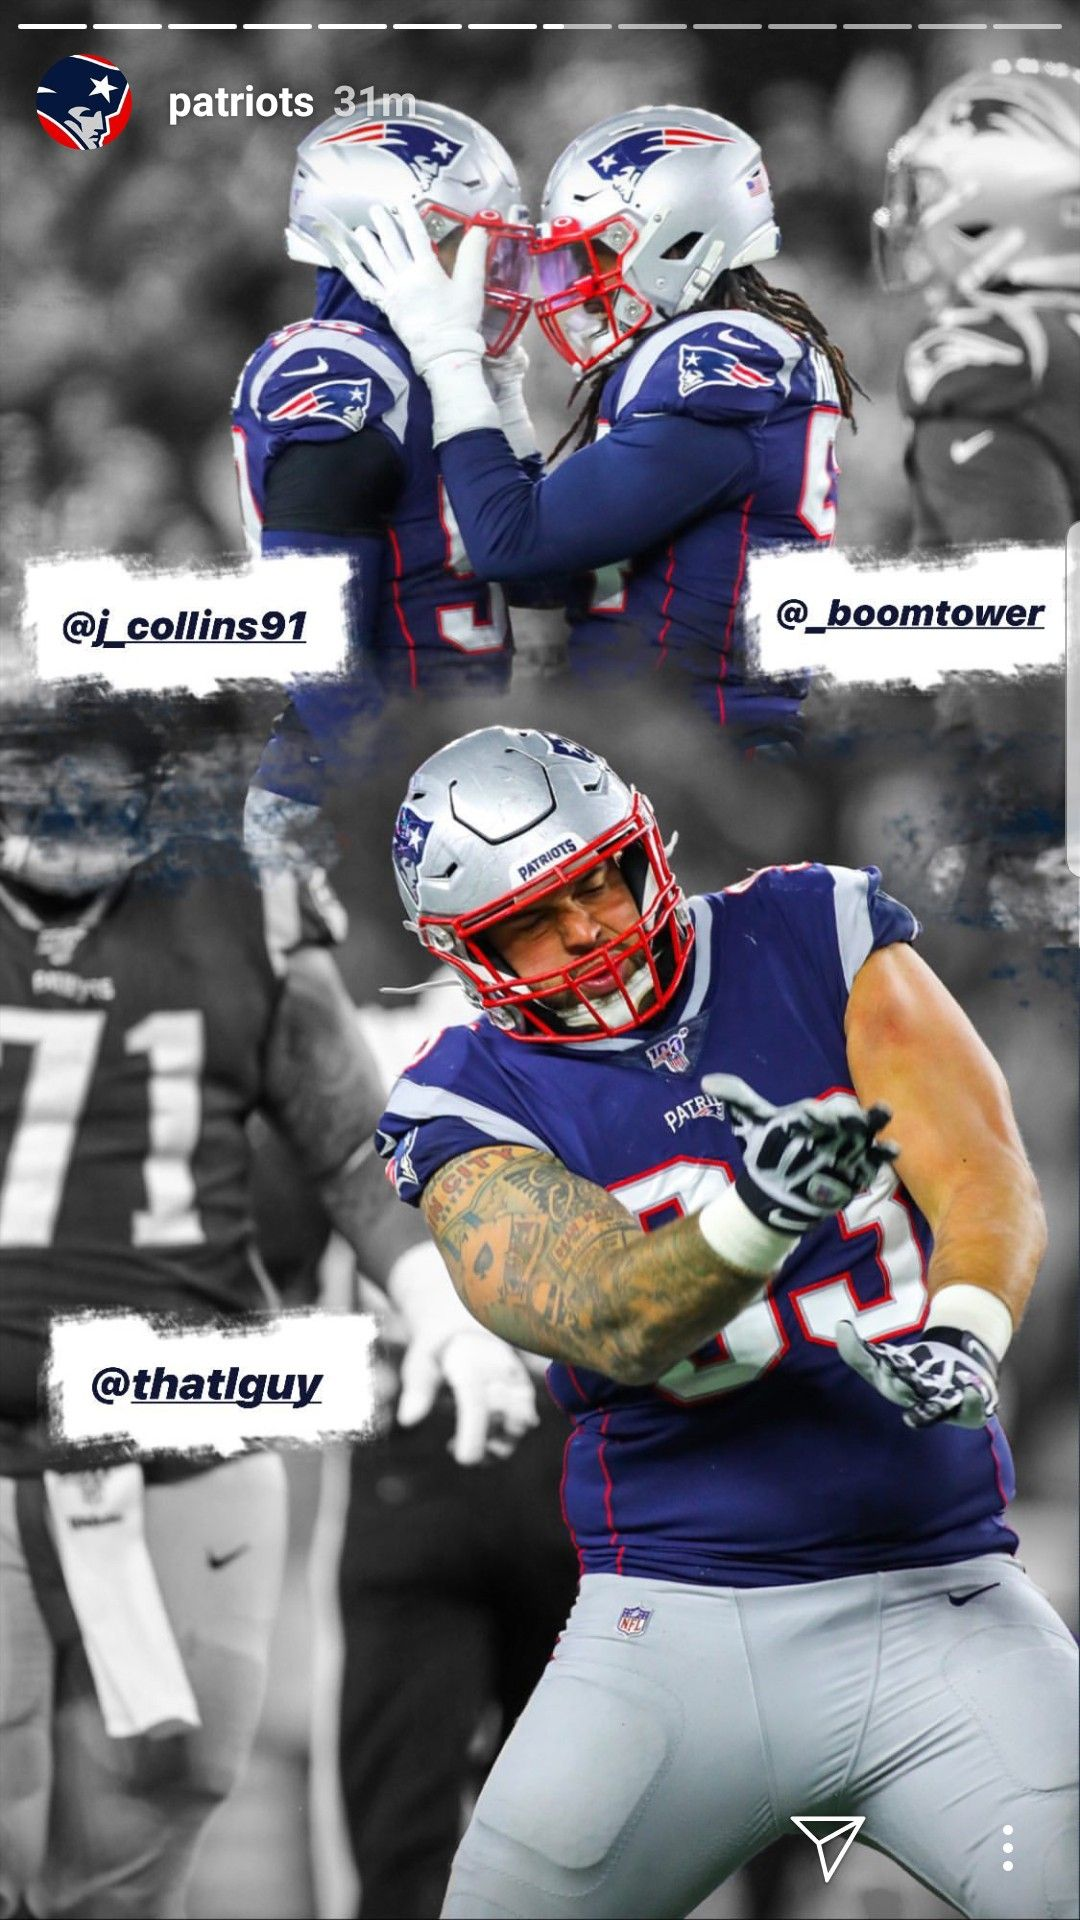 Pin By Mikey On Patriots New England Patriots England Patriots Patriots